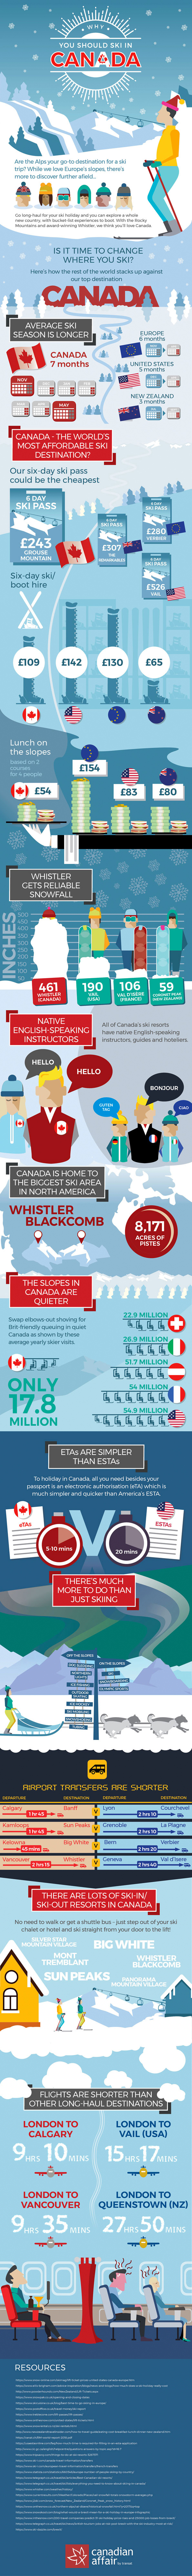 Why Canada Should Be Your Next Ski-Holiday Destination - Infographic